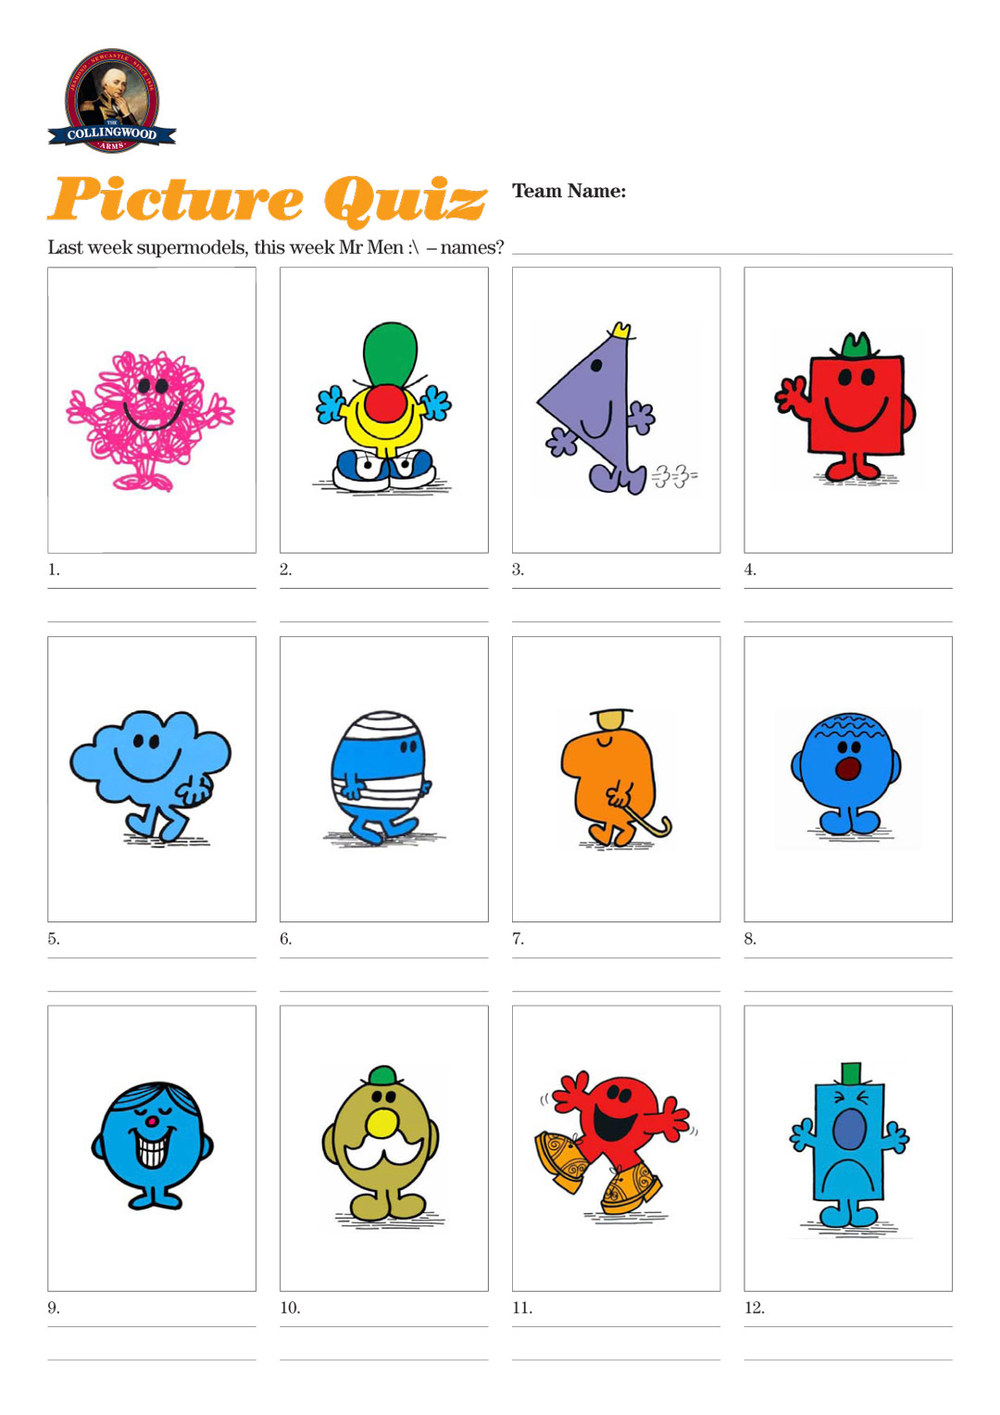 Quiz 61: Mr Men Not Welcomed At The Bar! — The Collingwood